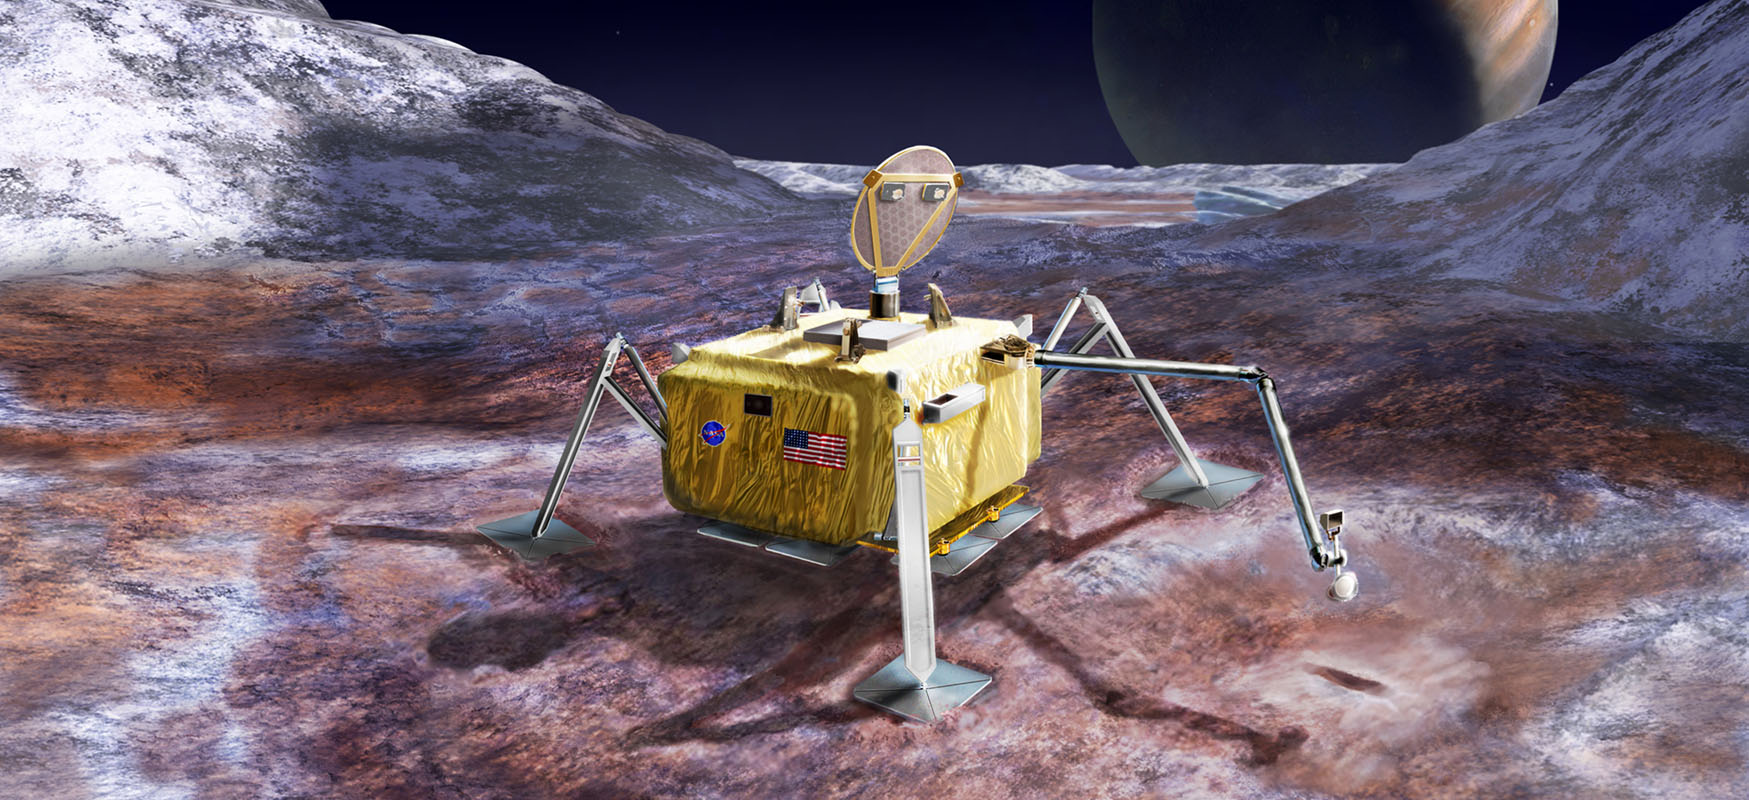 This artist's rendering illustrates a conceptual design for a potential future mission to land a robotic probe on the surface of Jupiter's moon Europa.